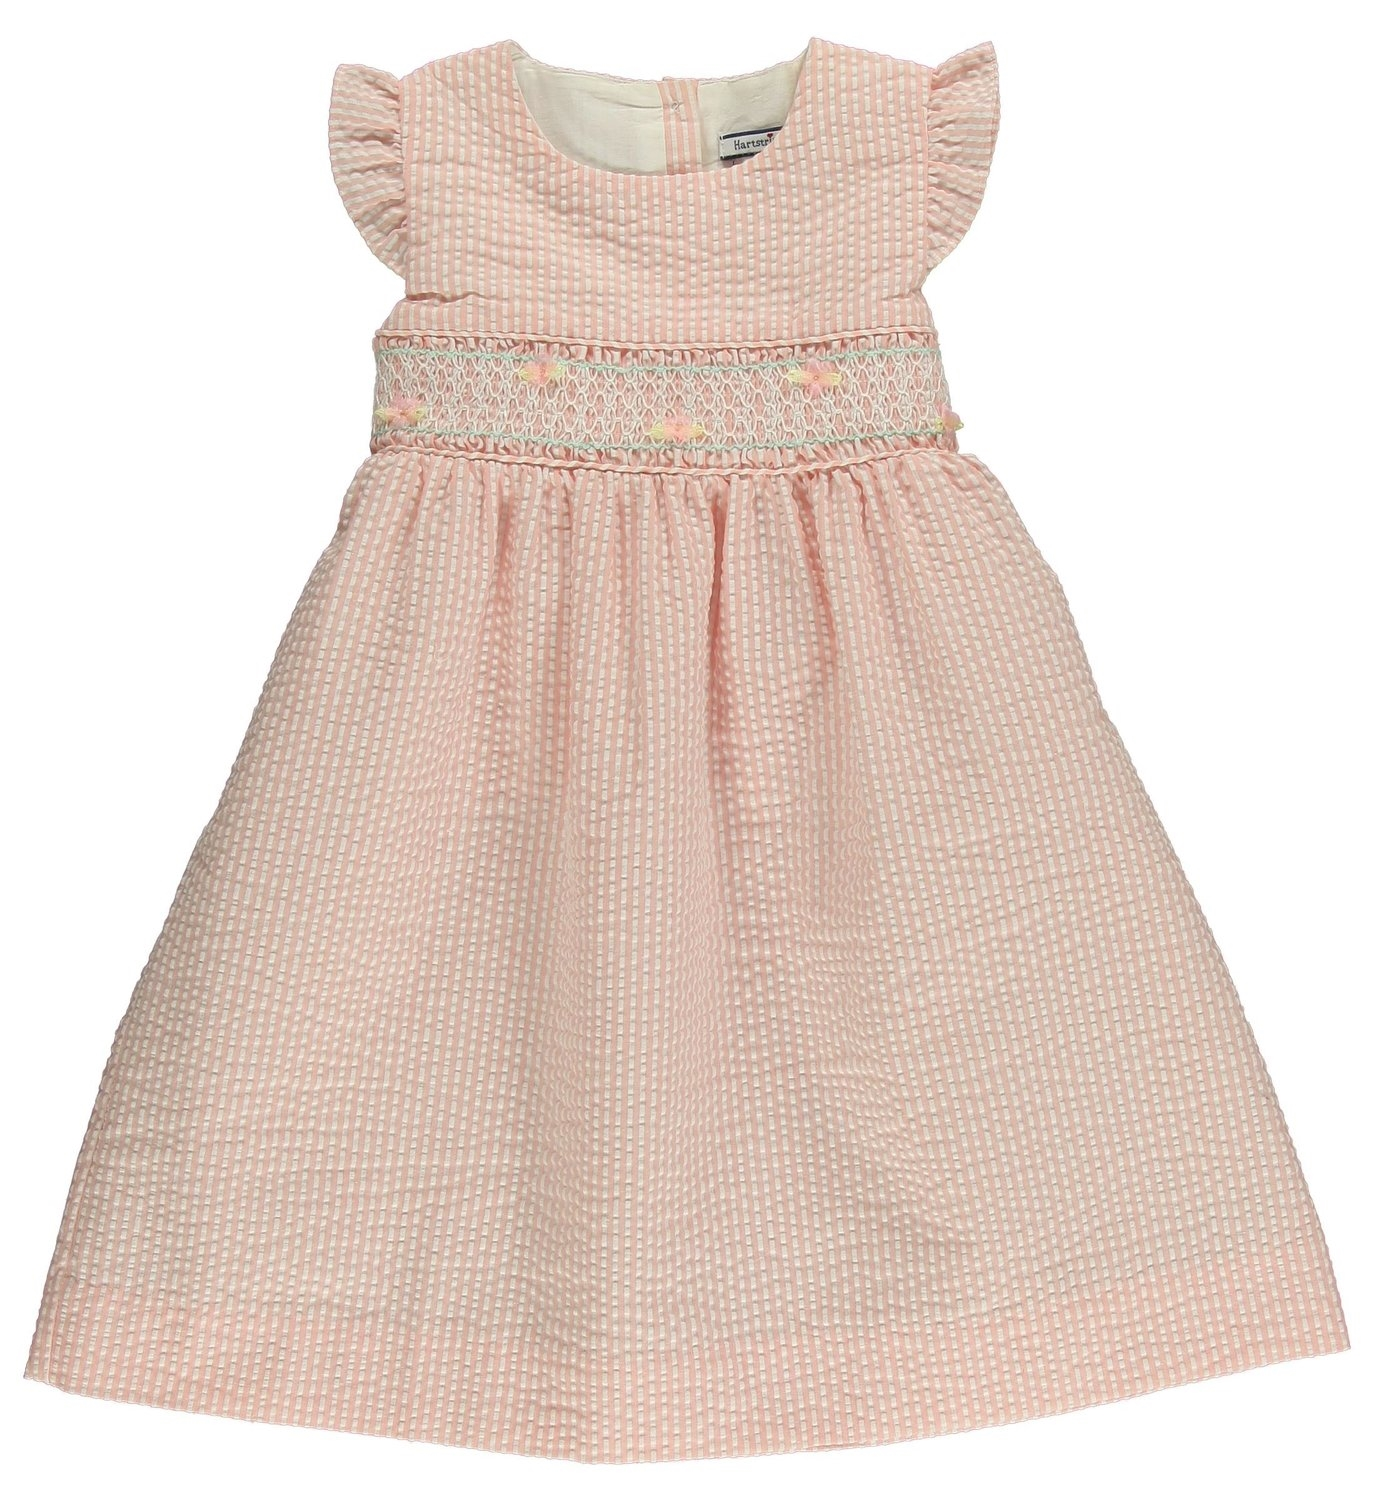 Hartstrings Apricot Dress